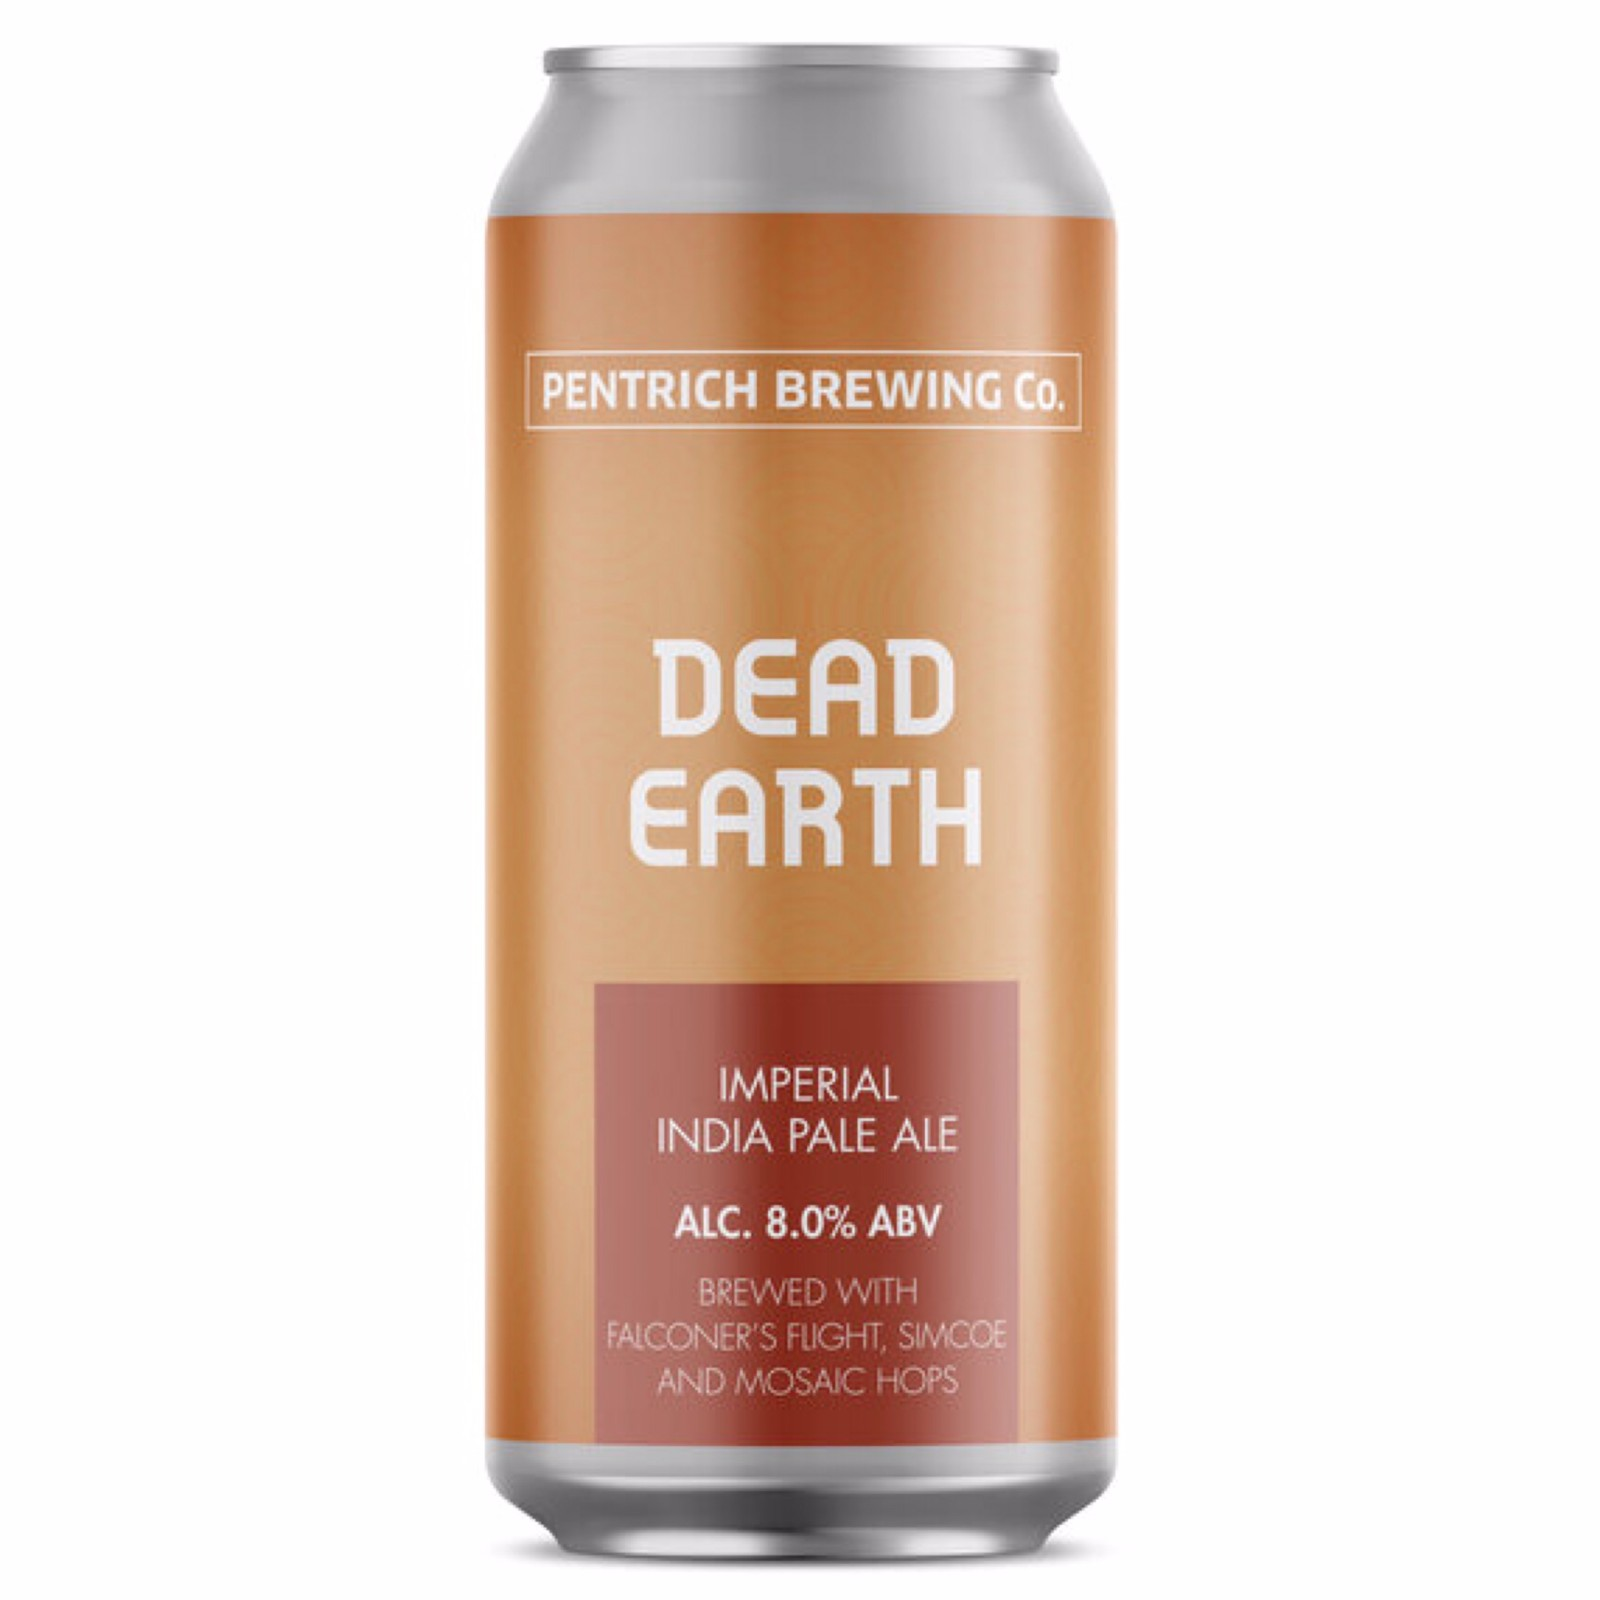 Dead Earth - Imperial IPA 8% 440ml Pentrich Brewing Co